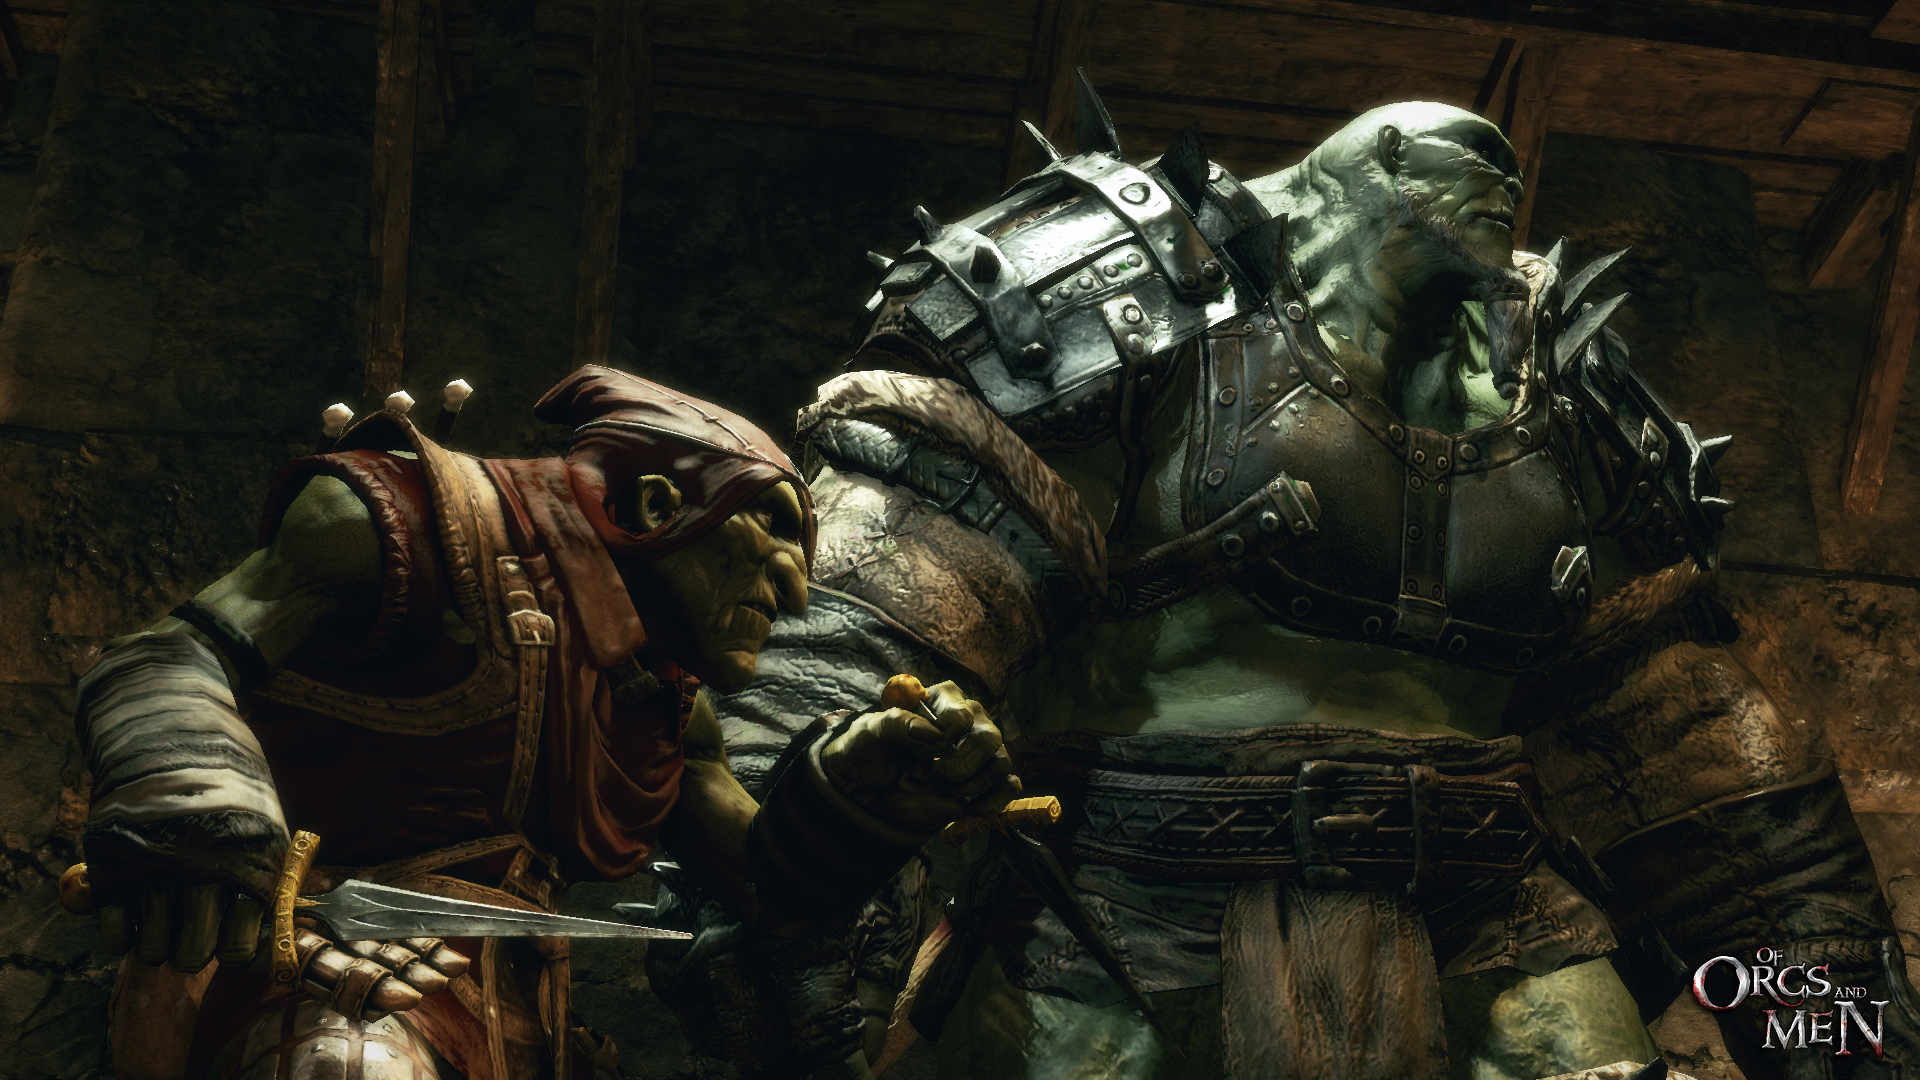 new_of_orcs_and_men-16